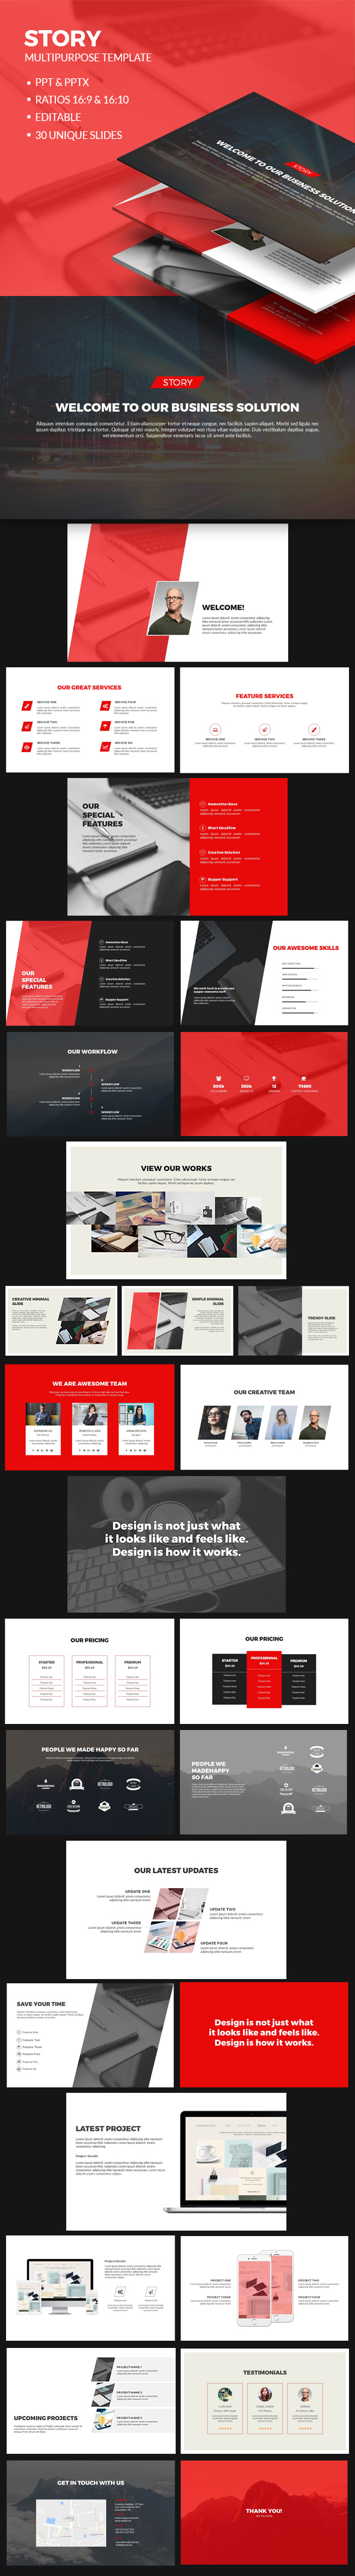 Clean PowerPoint Presentation Template-V02 - Business PowerPoint Templates